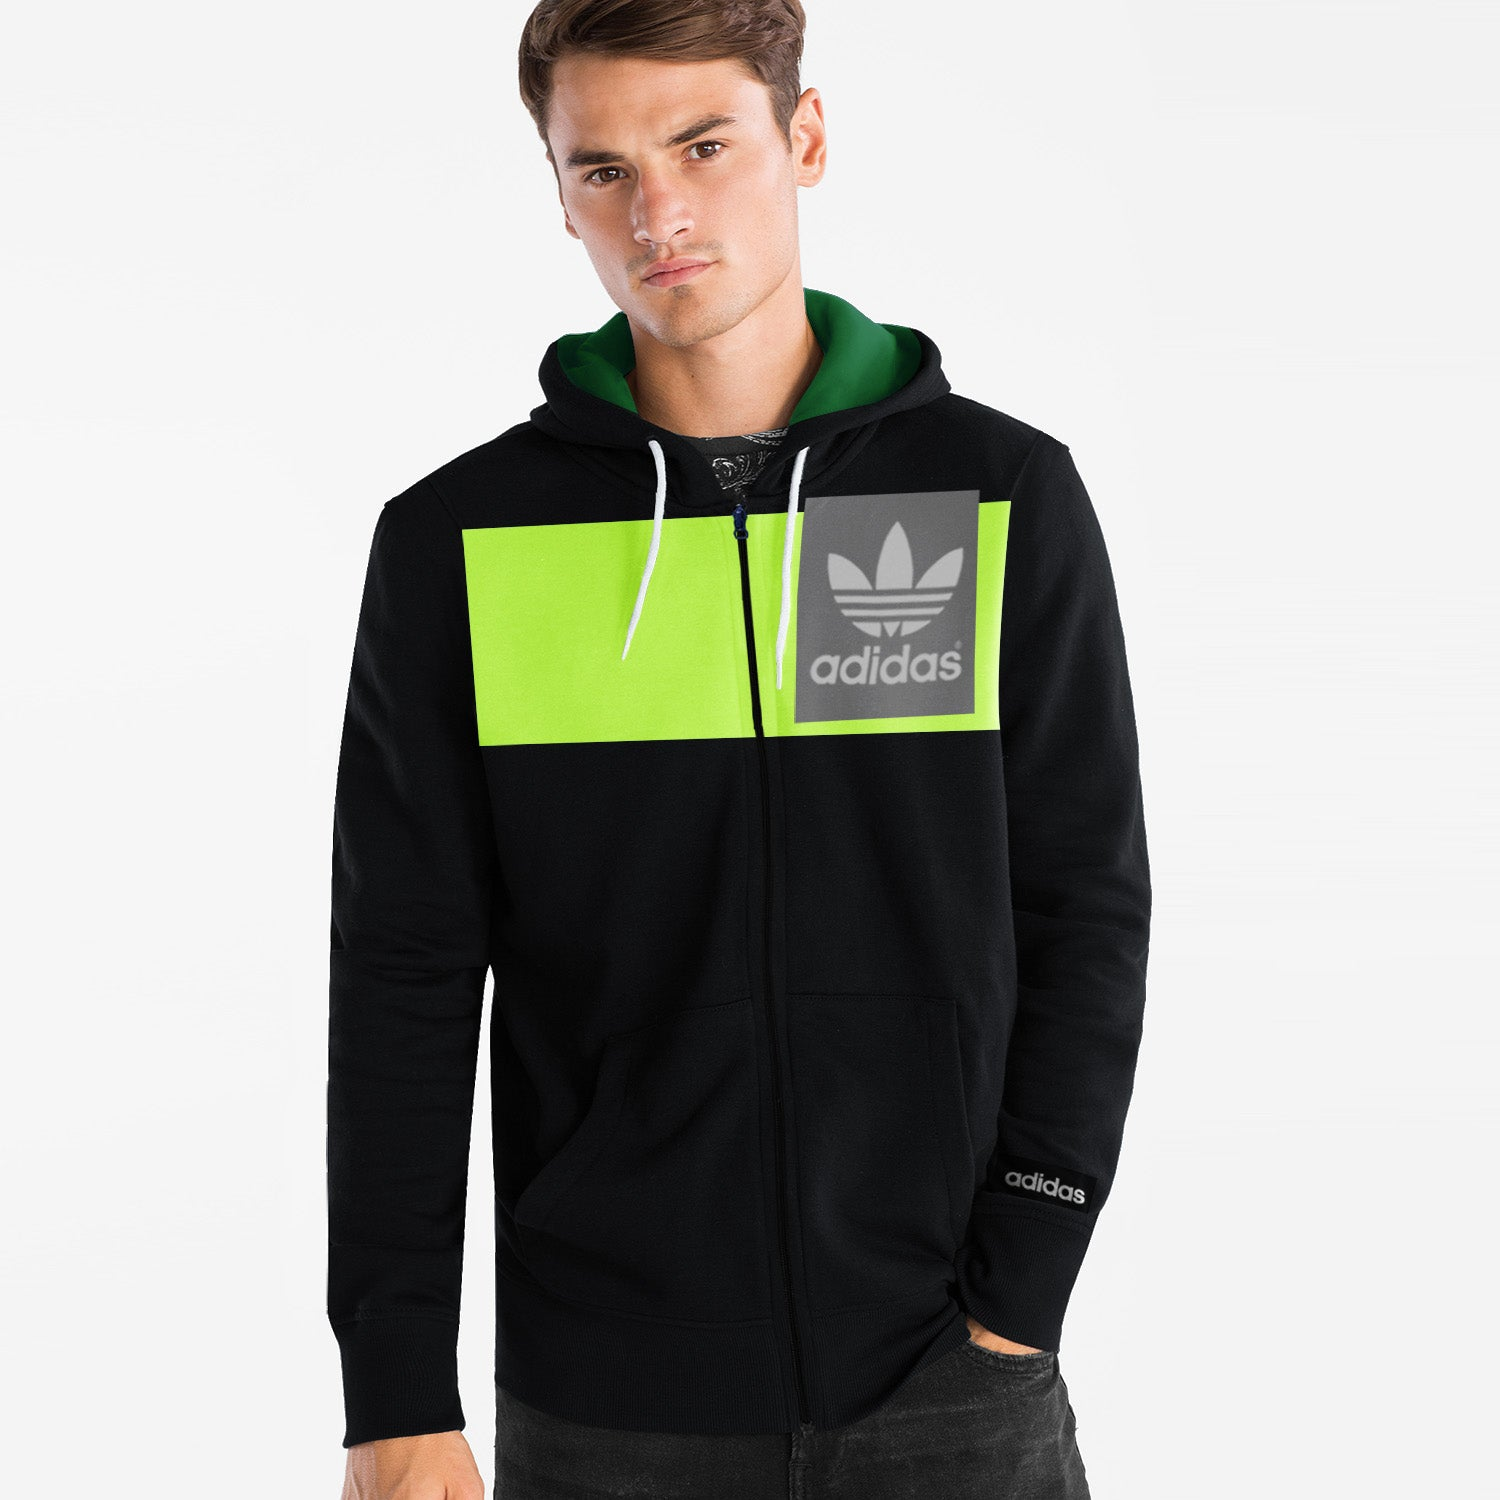 Adidas Slim Fit Stretchable Zipper Hoodie For Men-Black with Lime Green Panel-BE11104